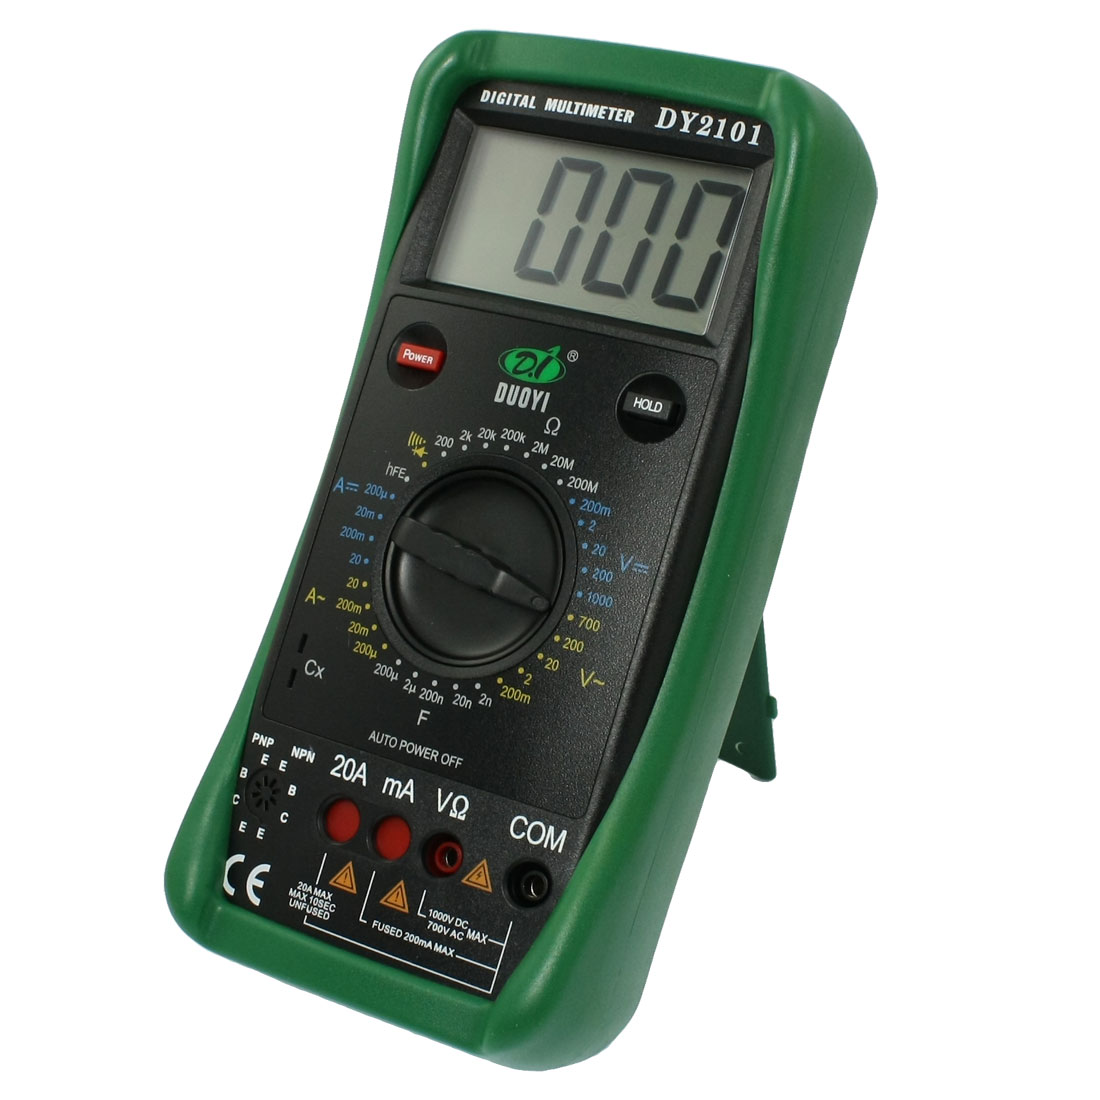 LCD Display AC DC Voltmeter Ammeter Ohmmeter DY2101 Digital Multimeter